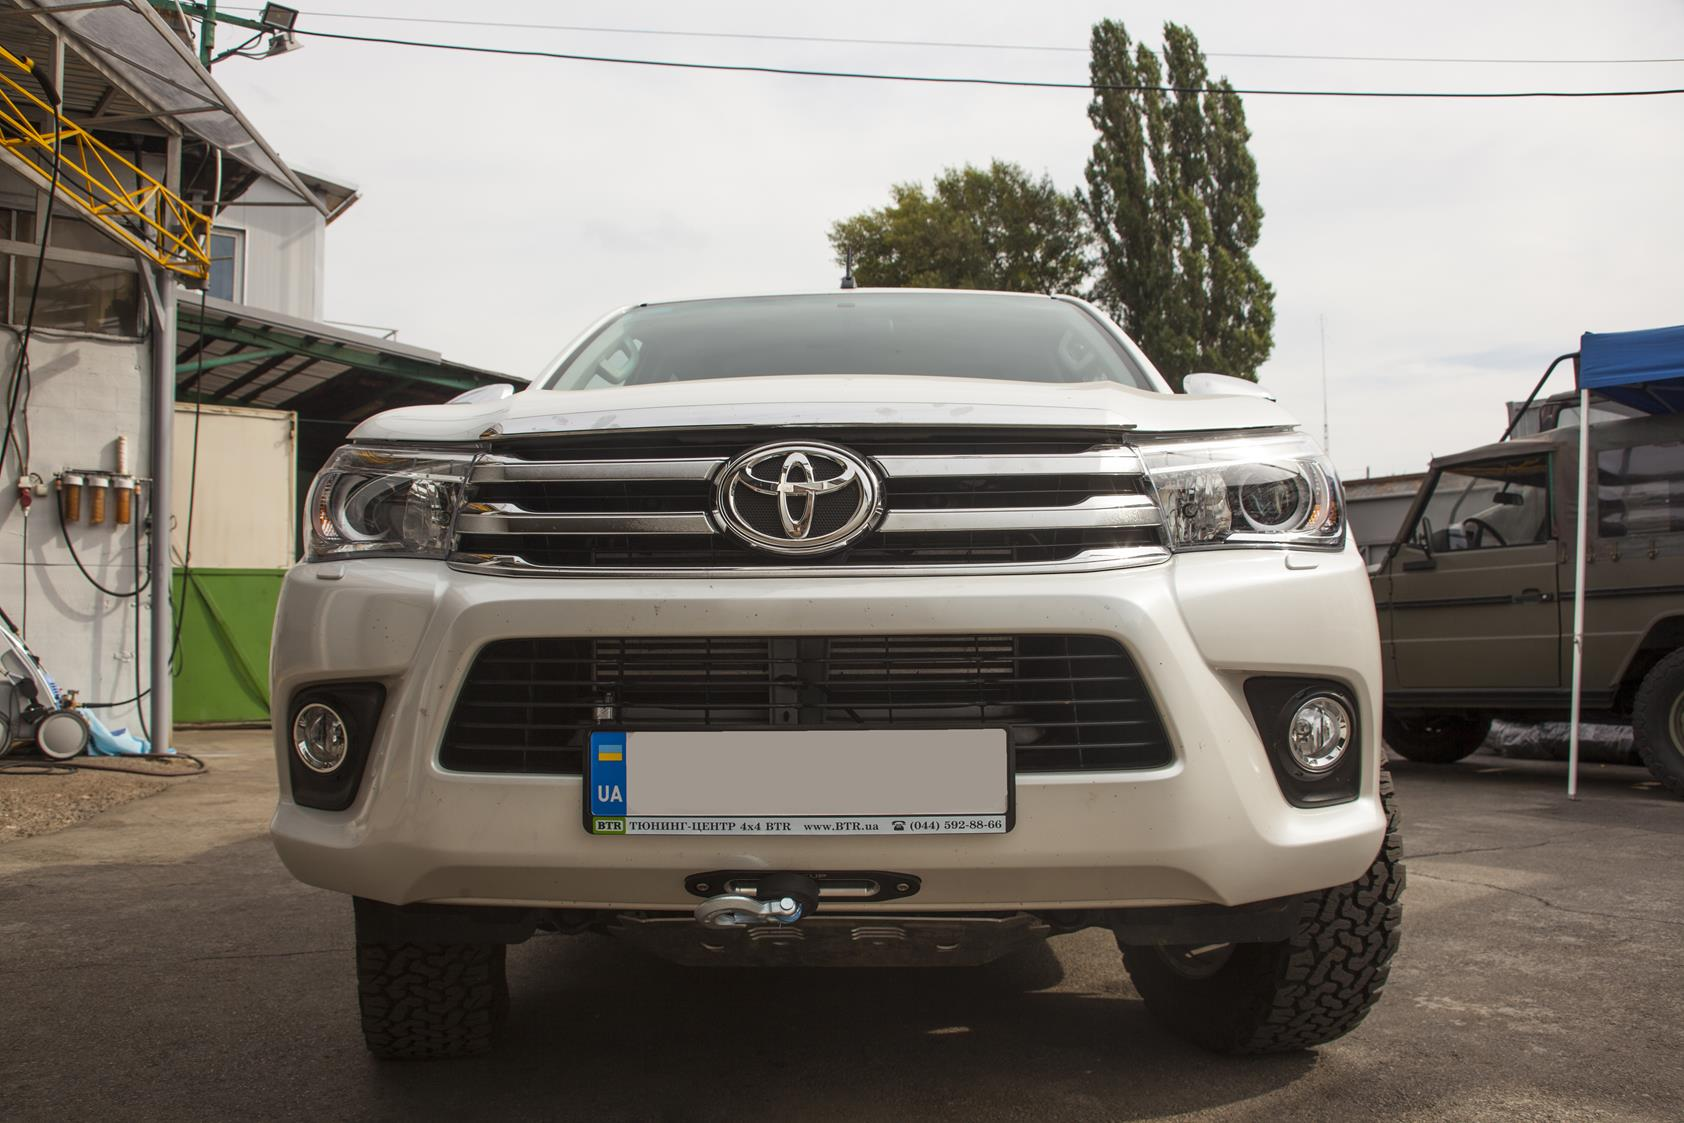 Toyota_Hilux_2016_Winch8